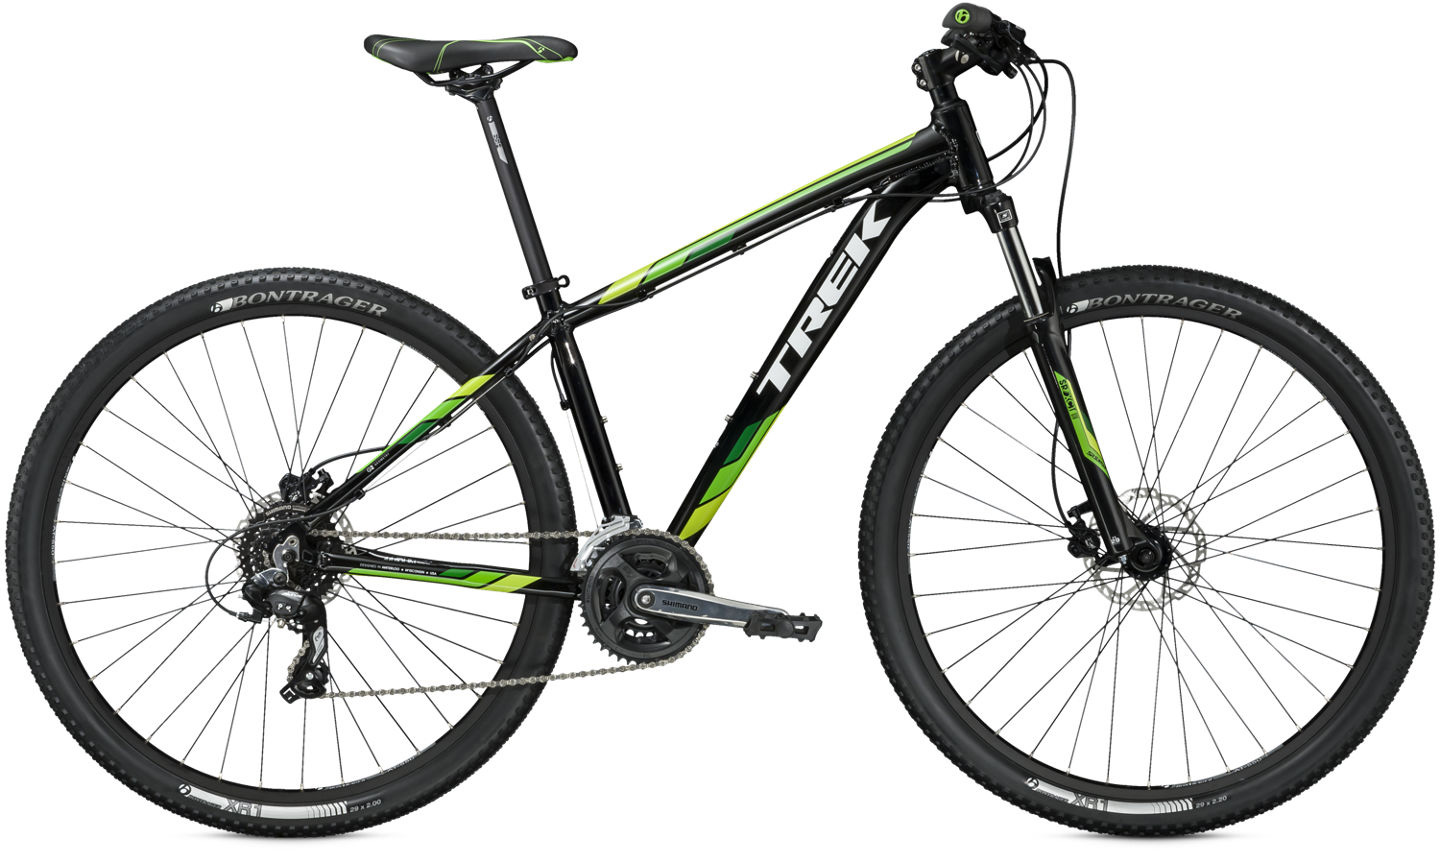 42531a7a8e6 Trek Marlin 6 - Bikes, Parts, Accessories and Clothing. Full service ...